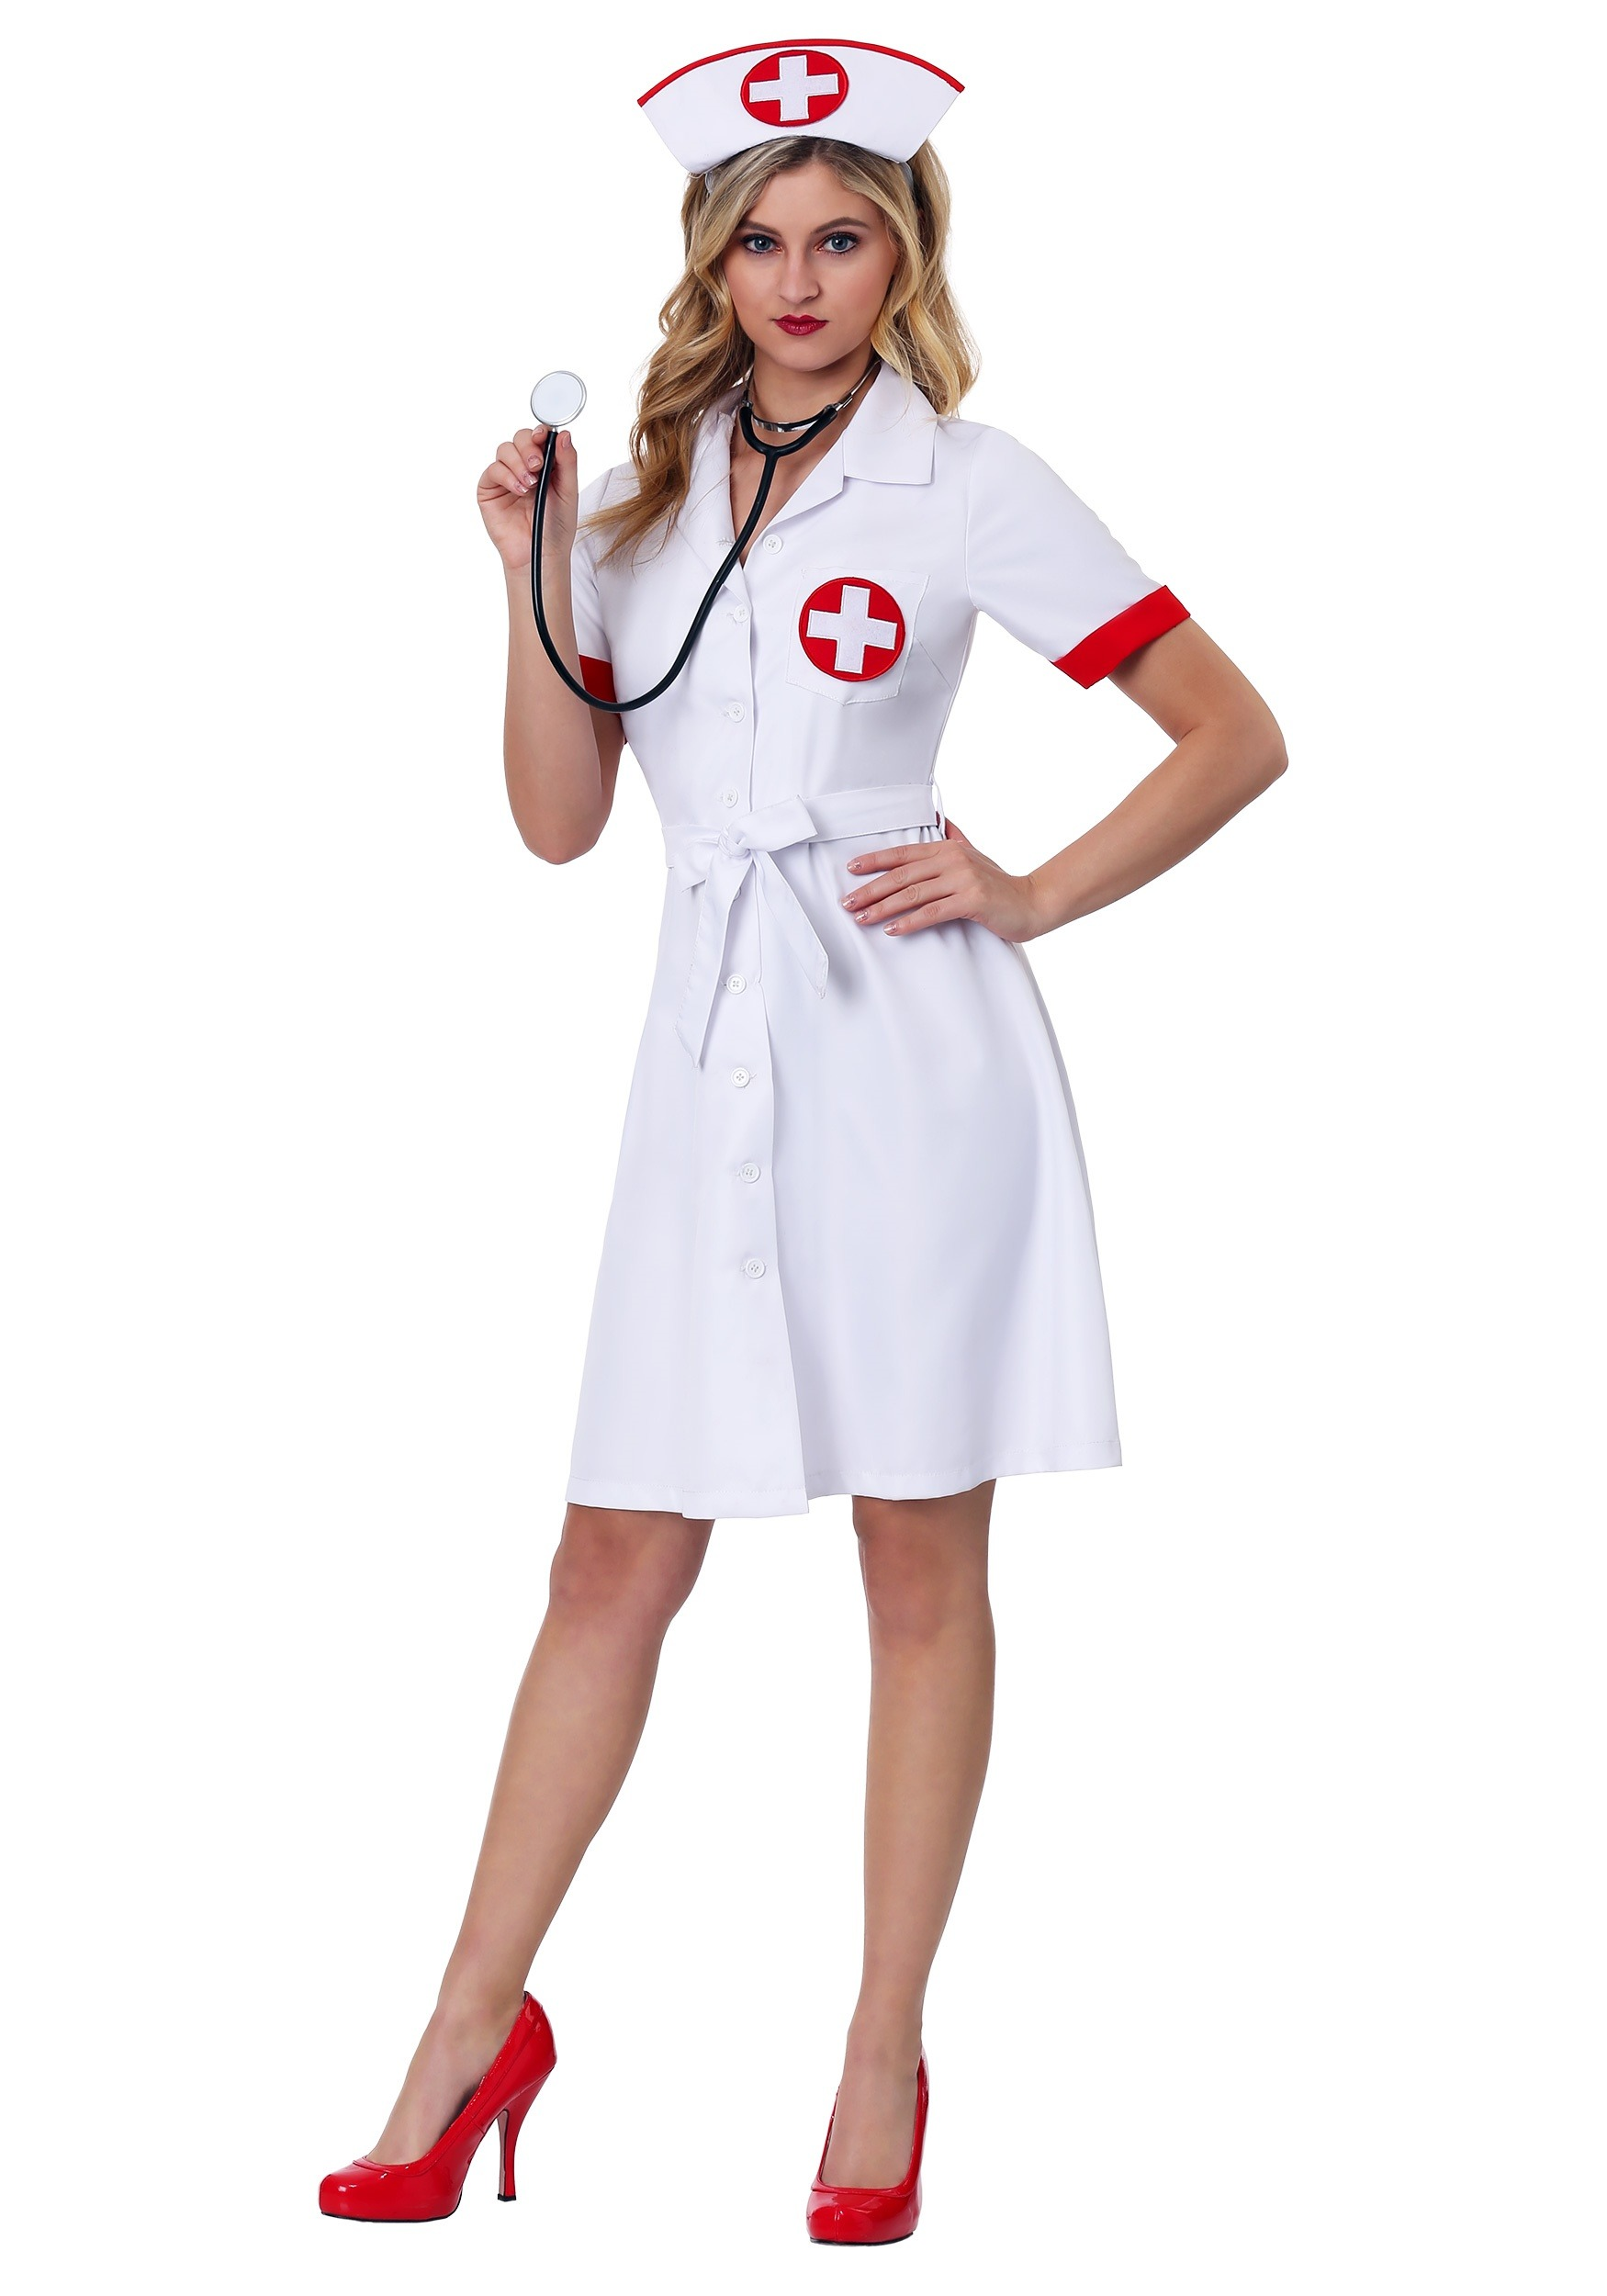 womens-stitch-me-up-nurse-plus-size-costume